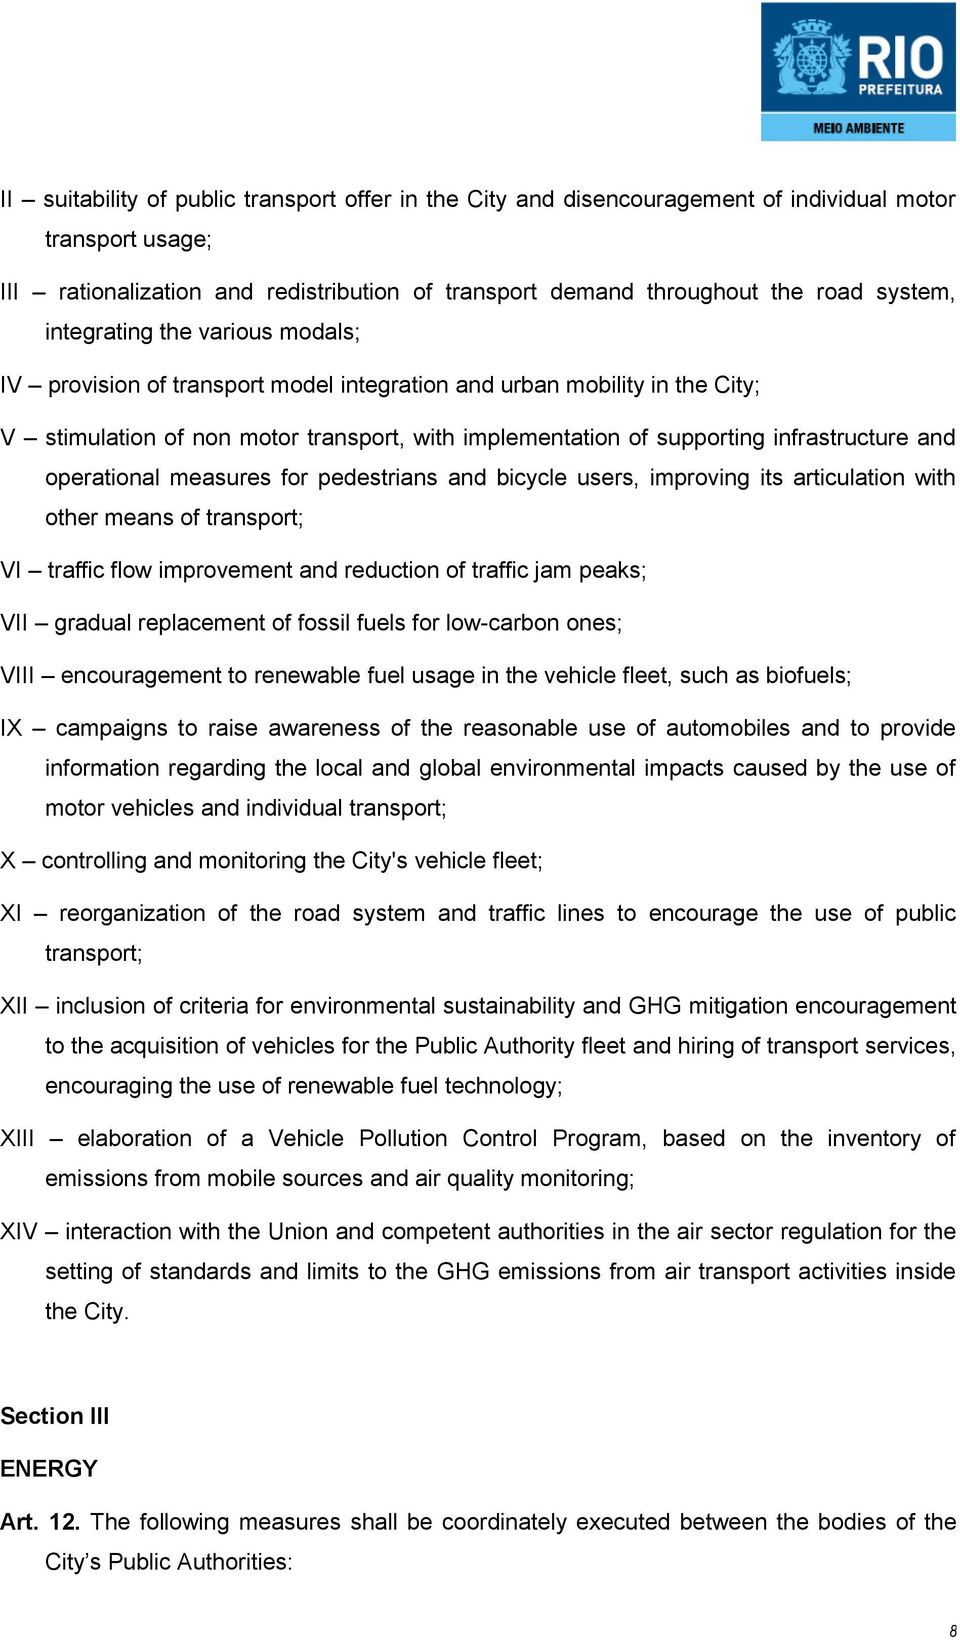 operational measures for pedestrians and bicycle users, improving its articulation with other means of transport; VI traffic flow improvement and reduction of traffic jam peaks; VII gradual